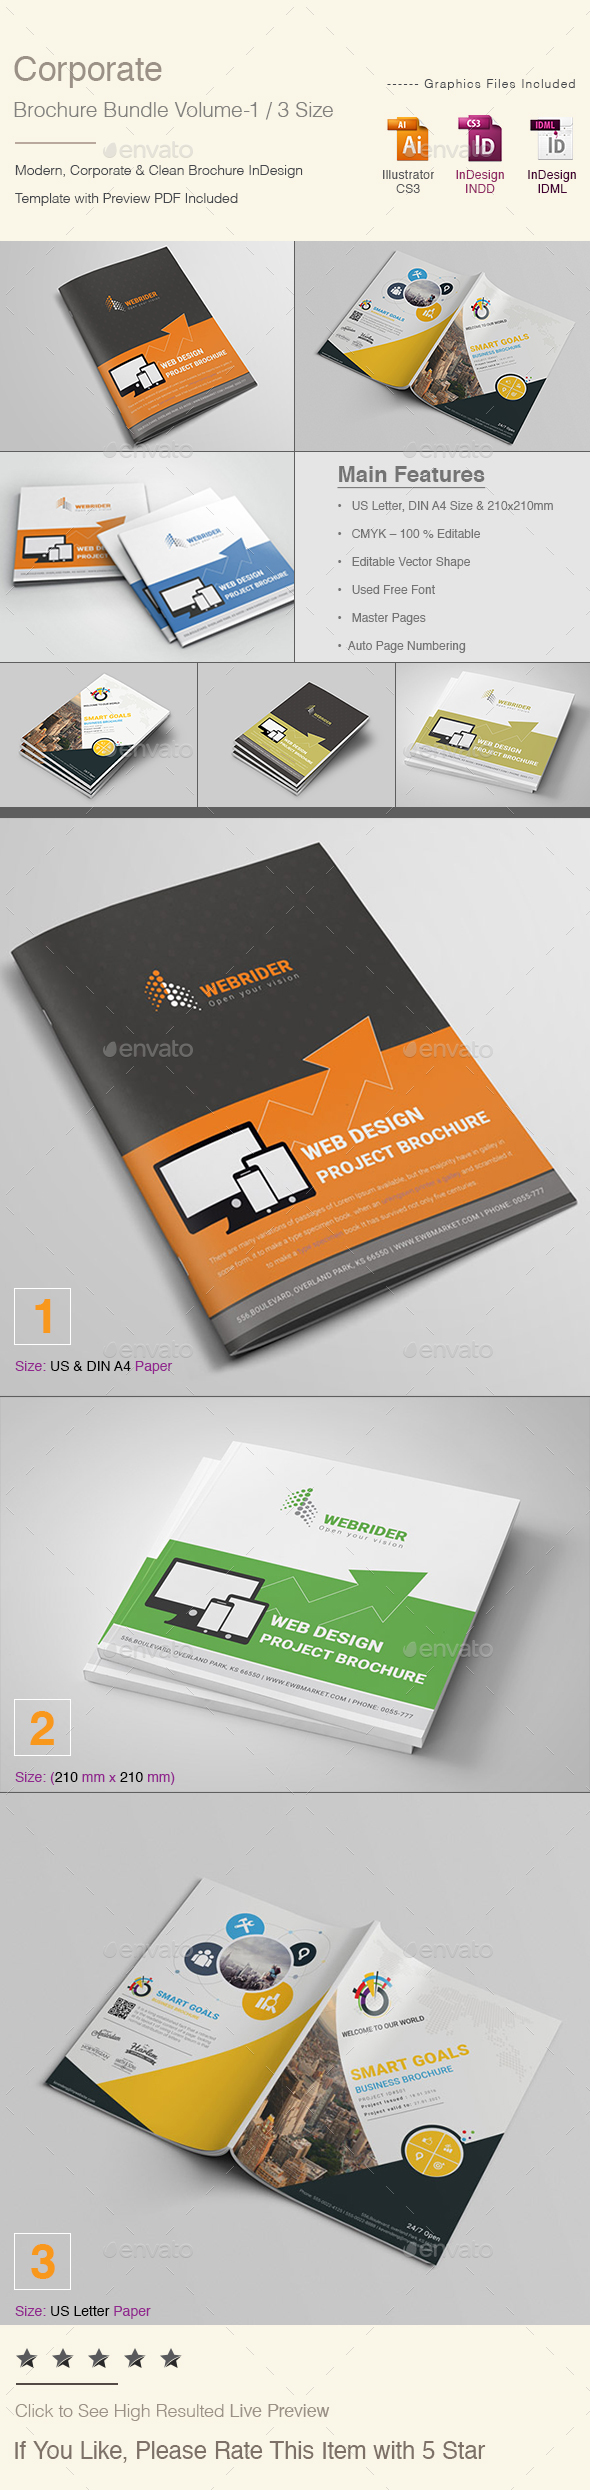 Corporate Brochure Bundle | Volume - 1 - Corporate Brochures